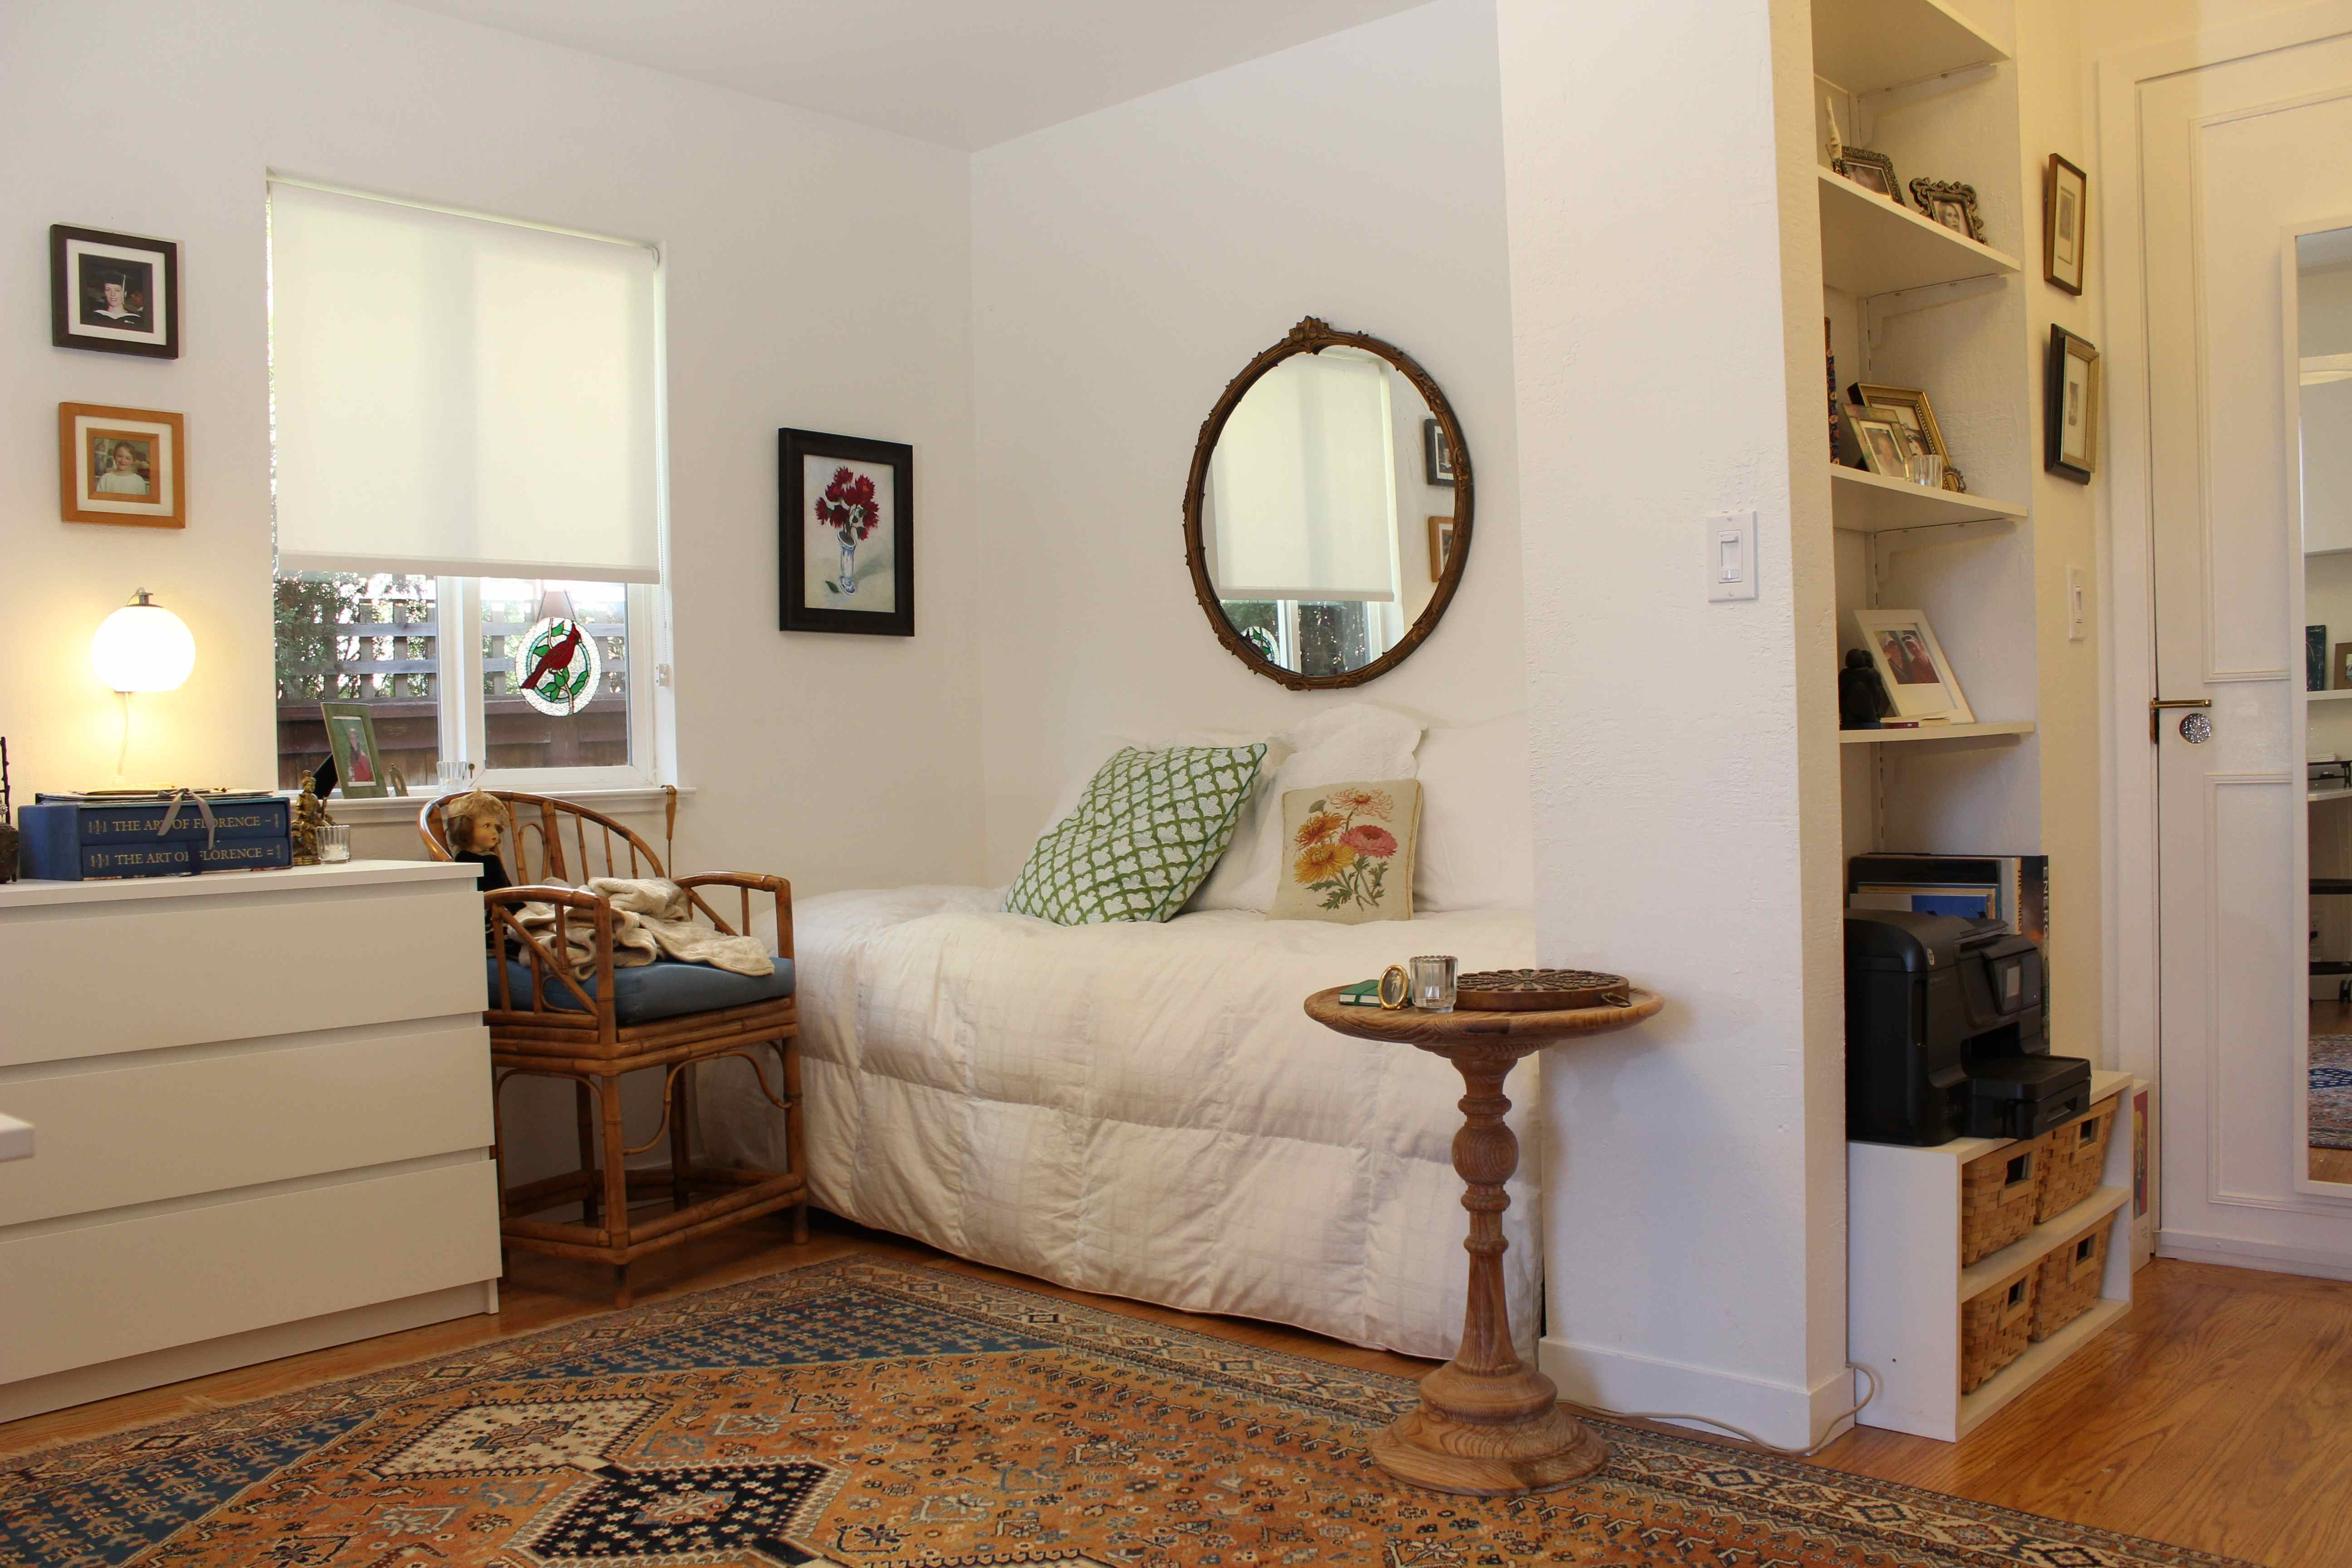 Lilypad Homes Converts Spare Bedrooms - Tiny House Blog on elizabeth homes plans, ryan homes plans, jordan homes plans, victoria homes plans,